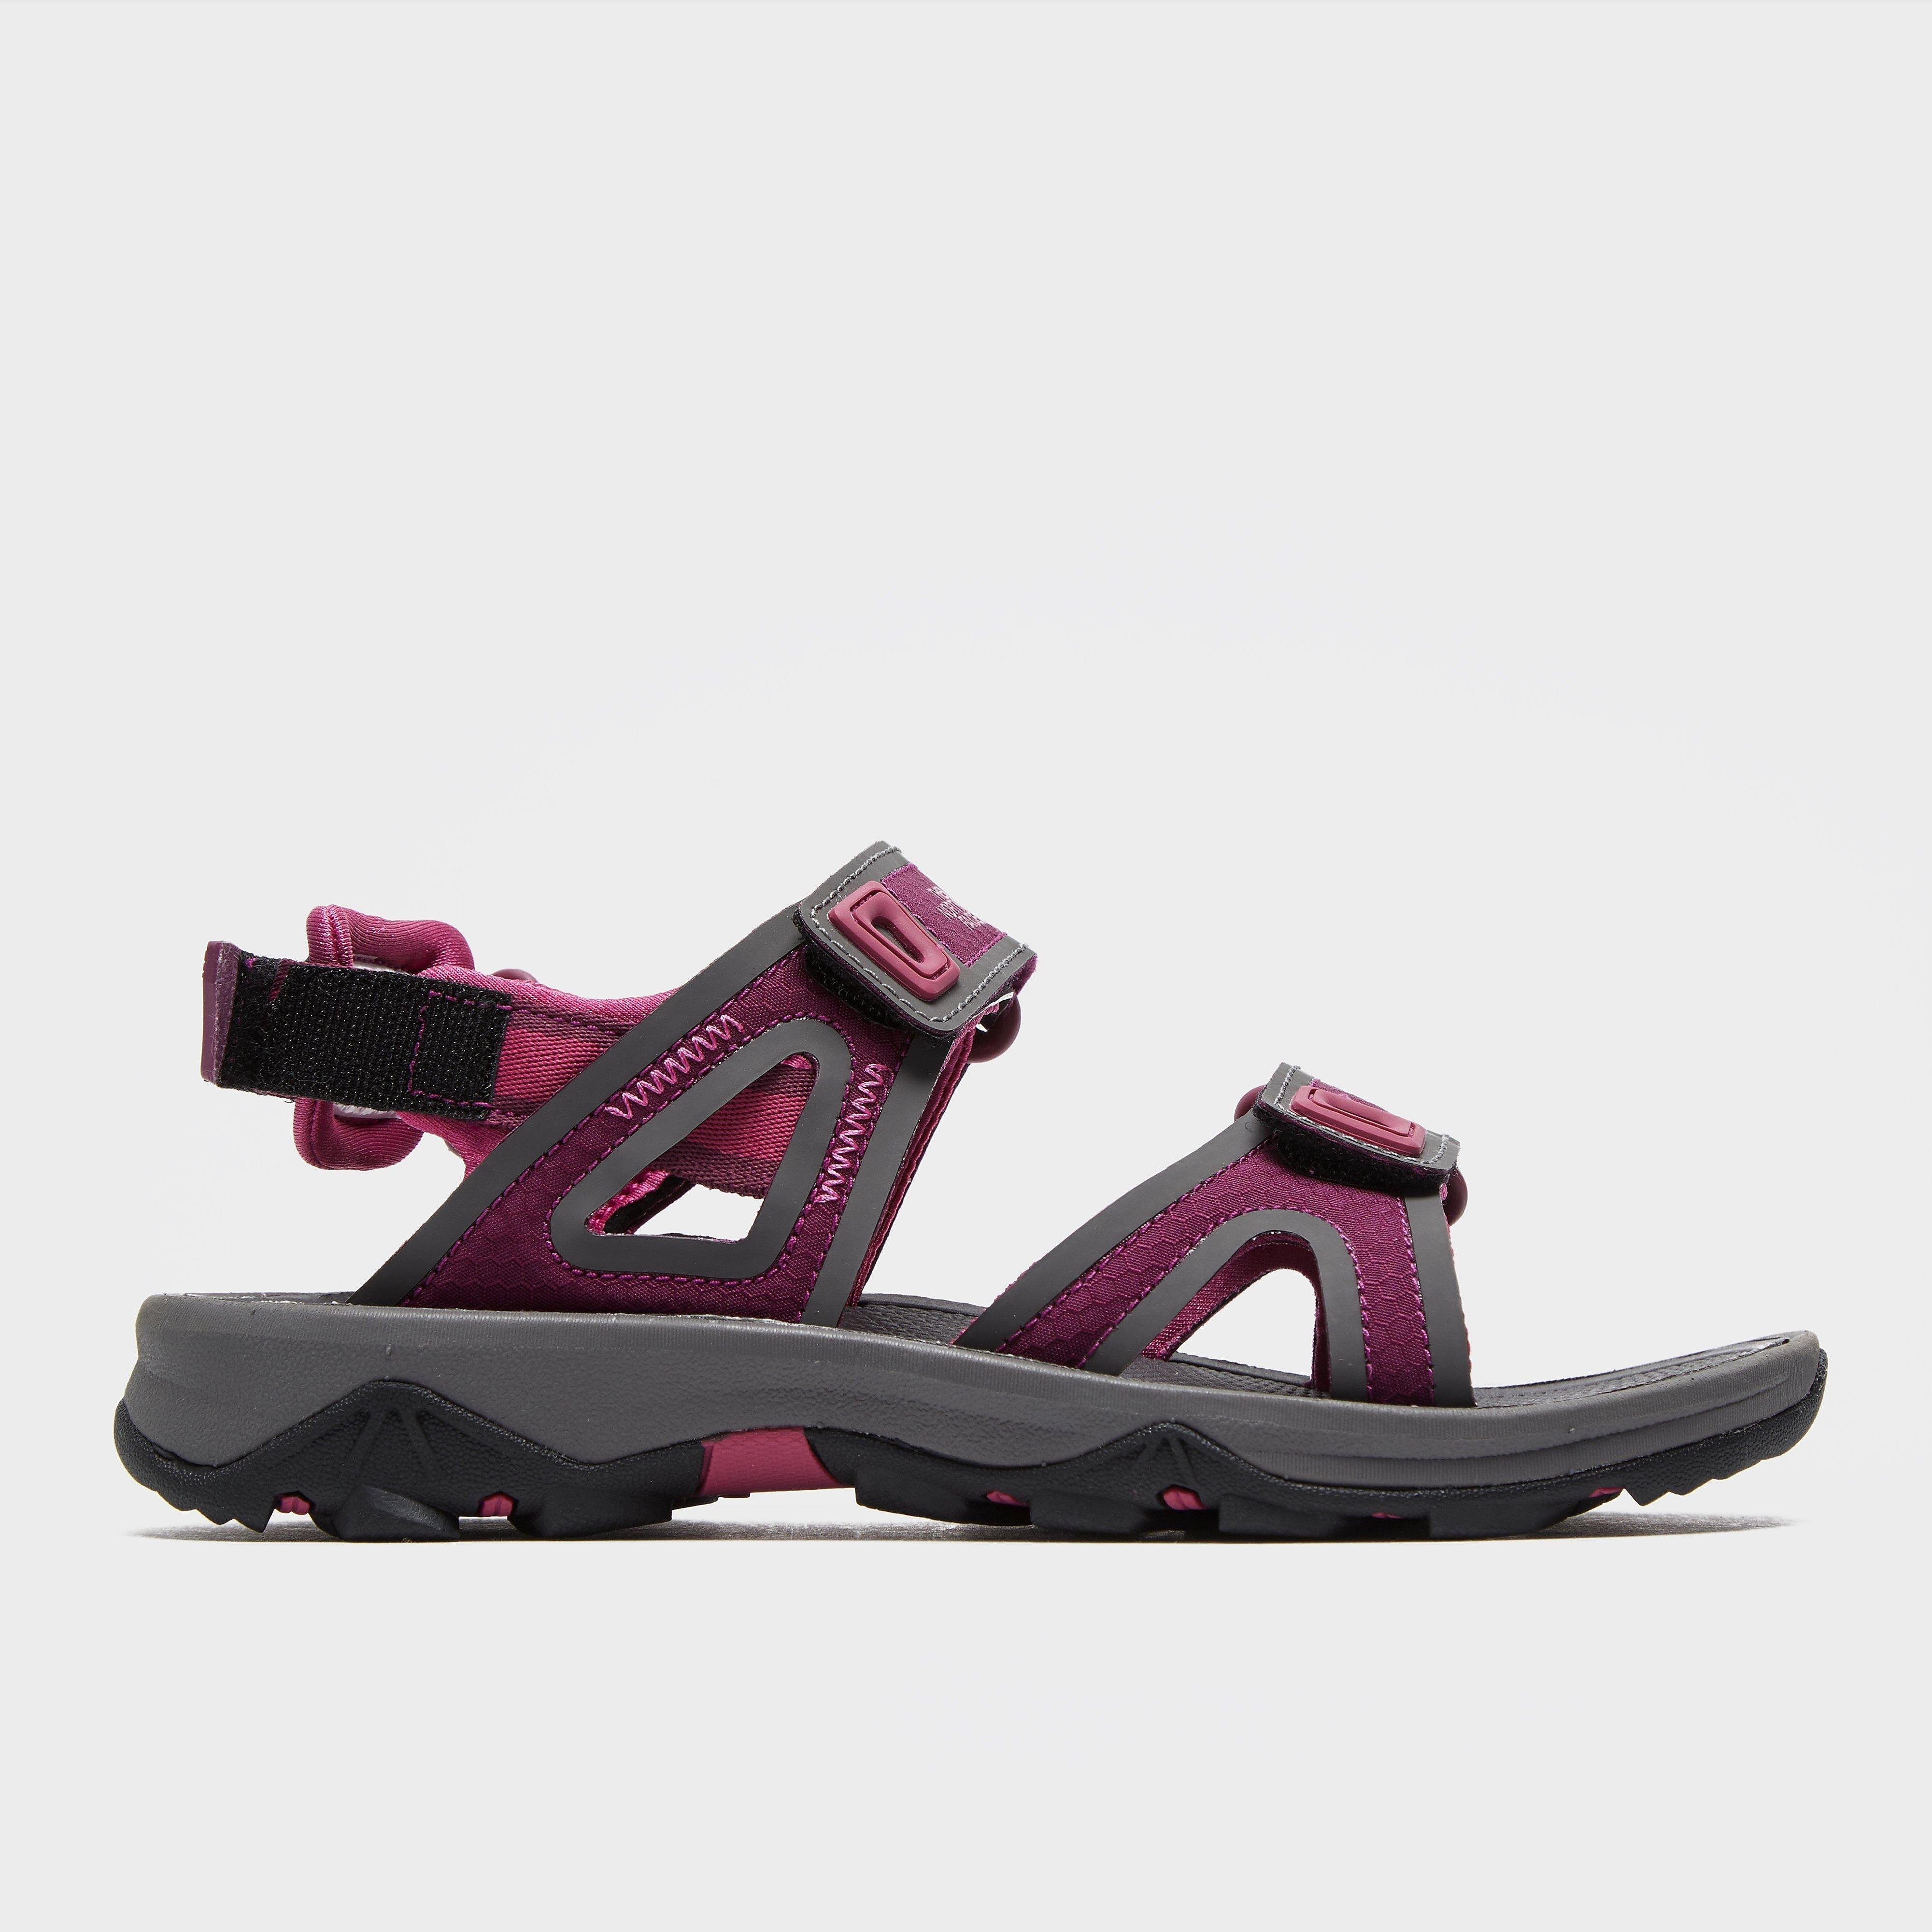 The North Face Hedgehog Women's Sandals